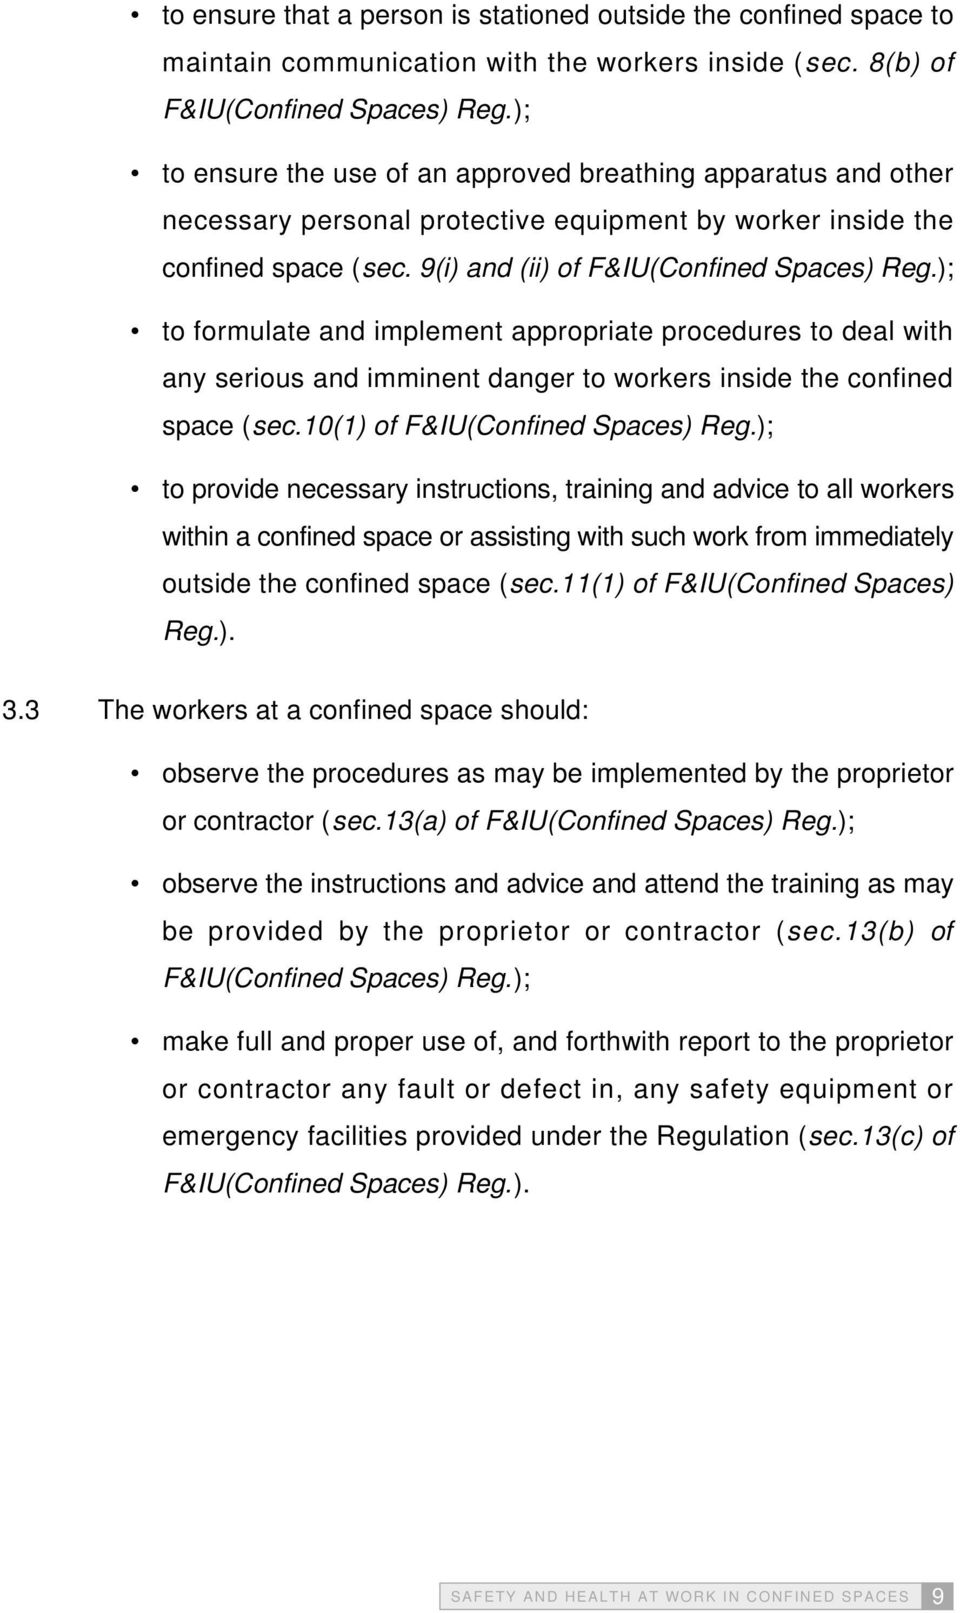 ); to formulate and implement appropriate procedures to deal with any serious and imminent danger to workers inside the confined space (sec.10(1) of F&IU(Confined Spaces) Reg.